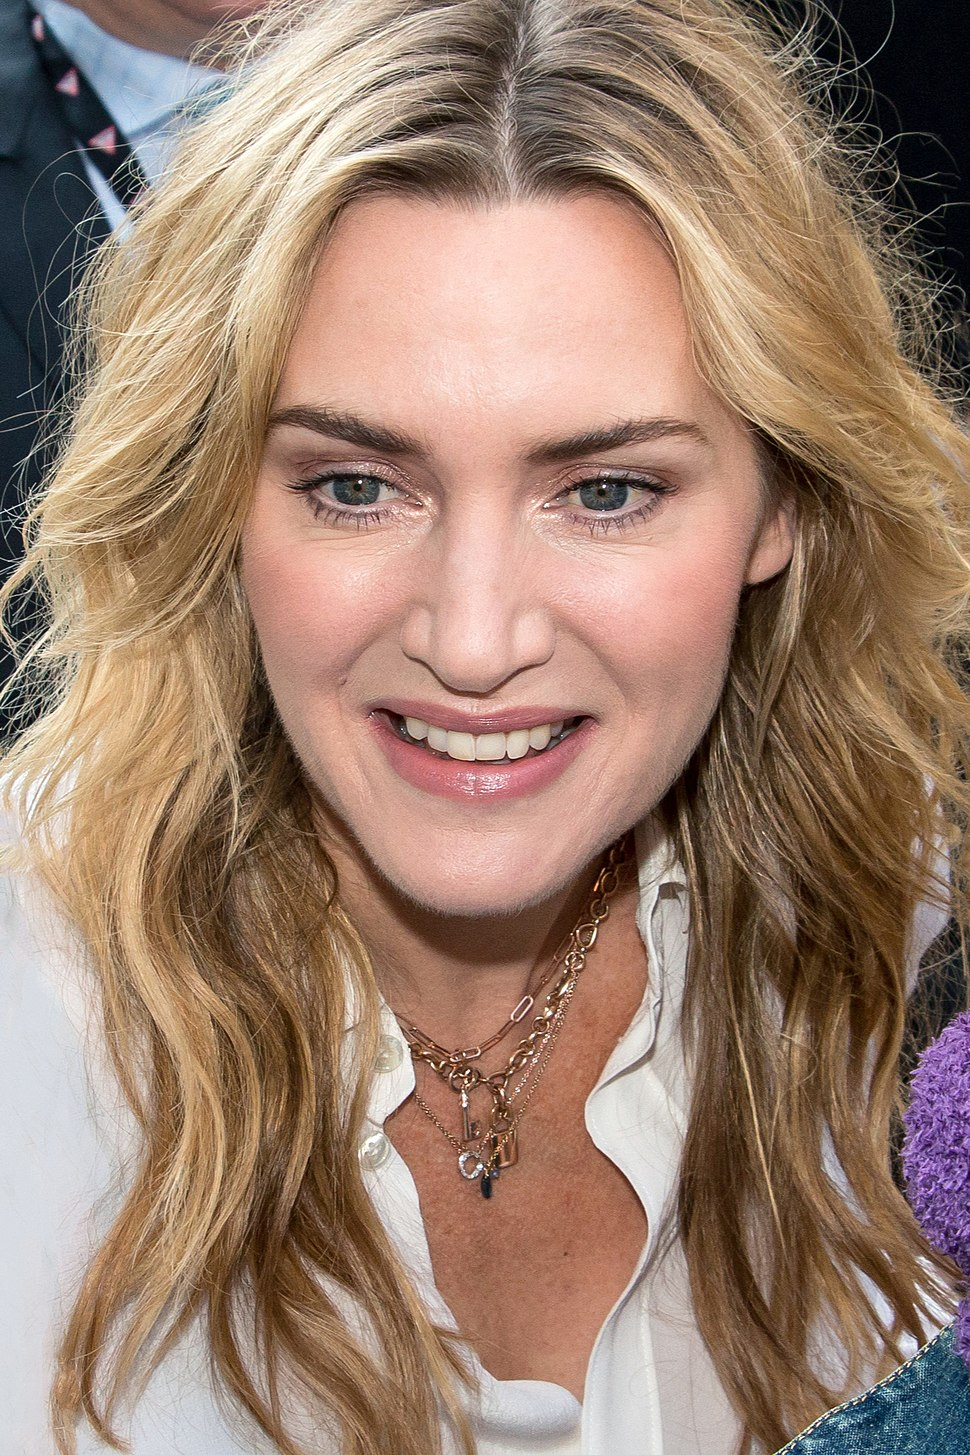 A close-up shot of Kate Winslet's face in 2017